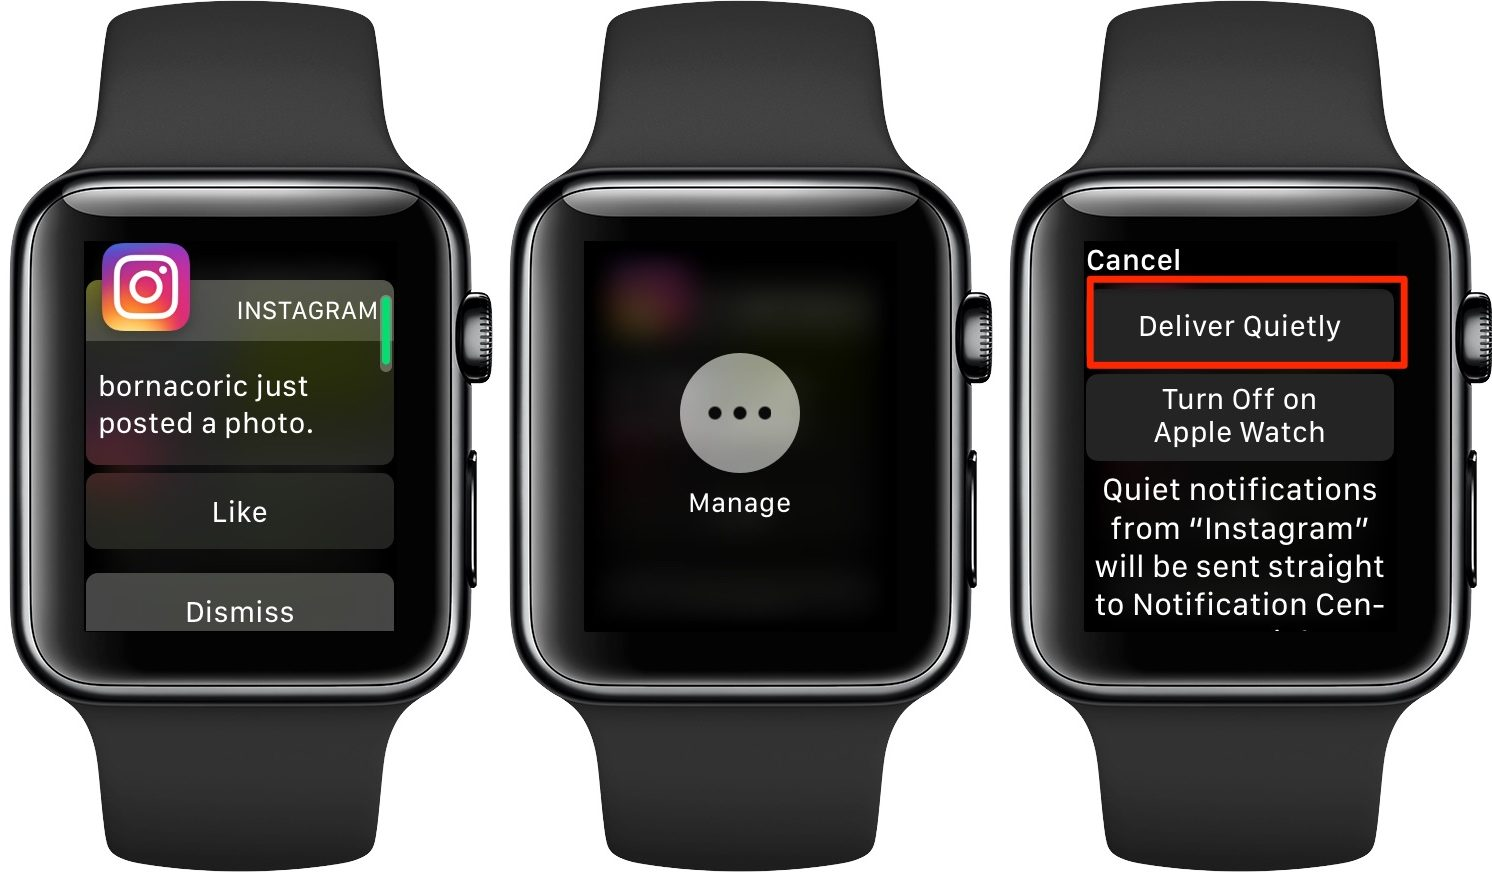 Apple Watch notifications - Instant Tuning lets you deliver notifications quietly right when they arrive